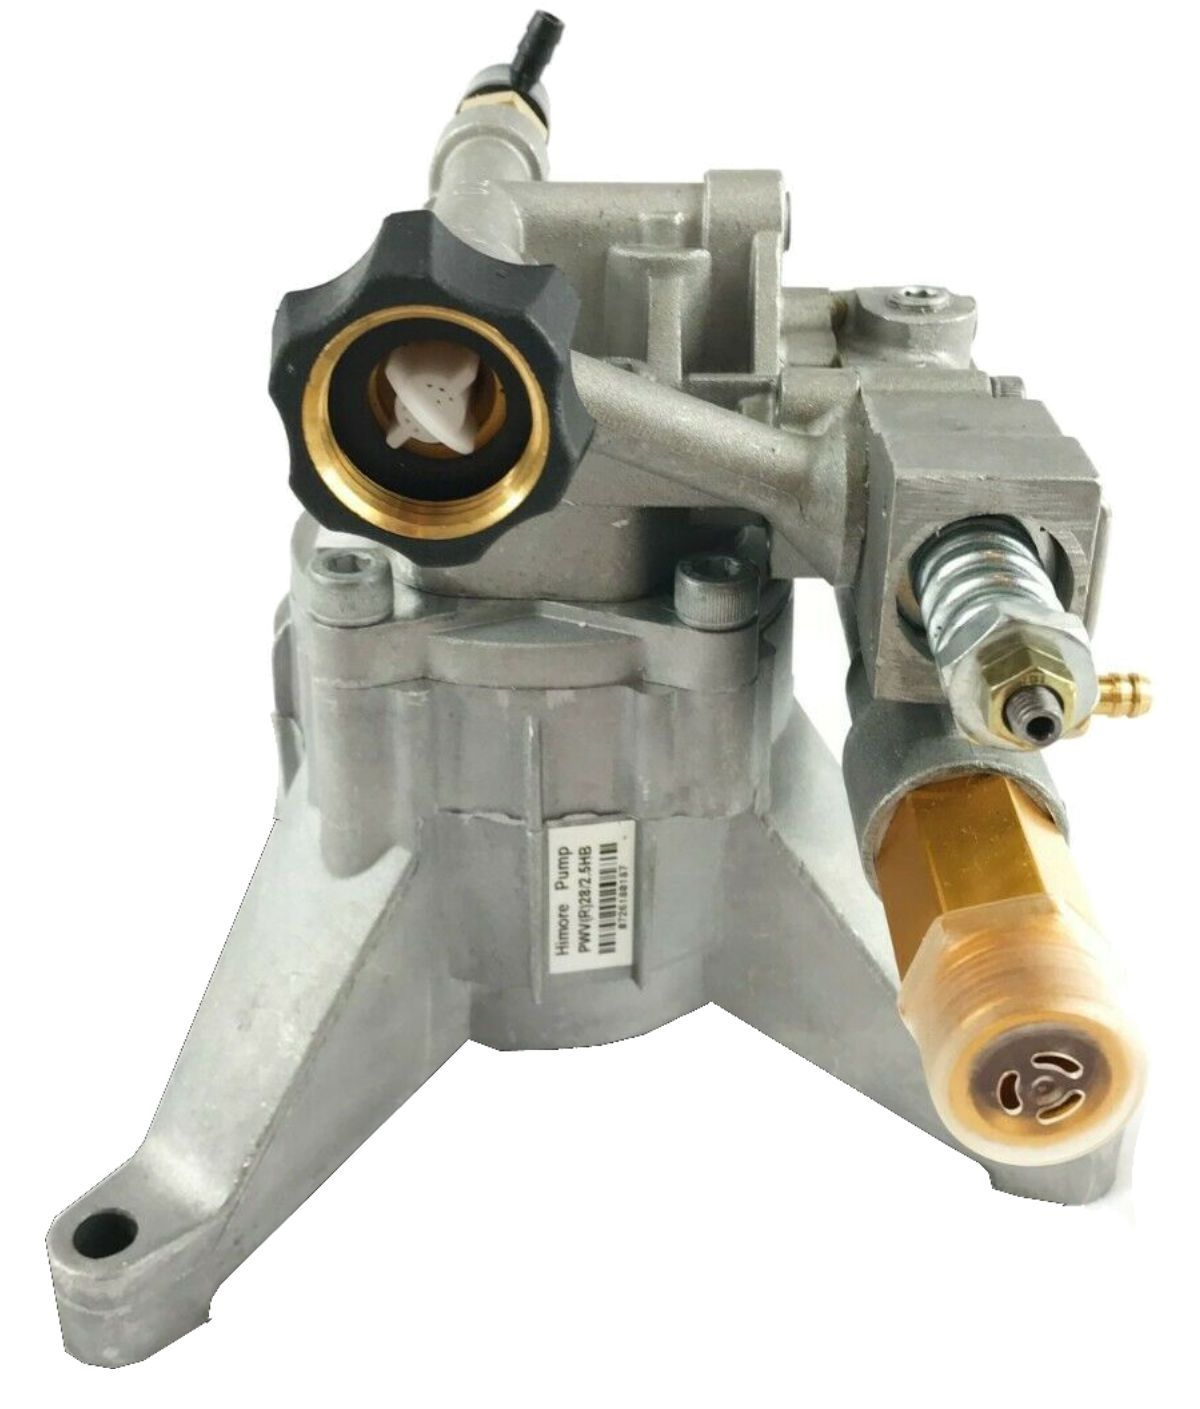 2700 PSI PRESSURE WASHER WATER PUMP Sears 919.762350 919.769010 - AE-Power